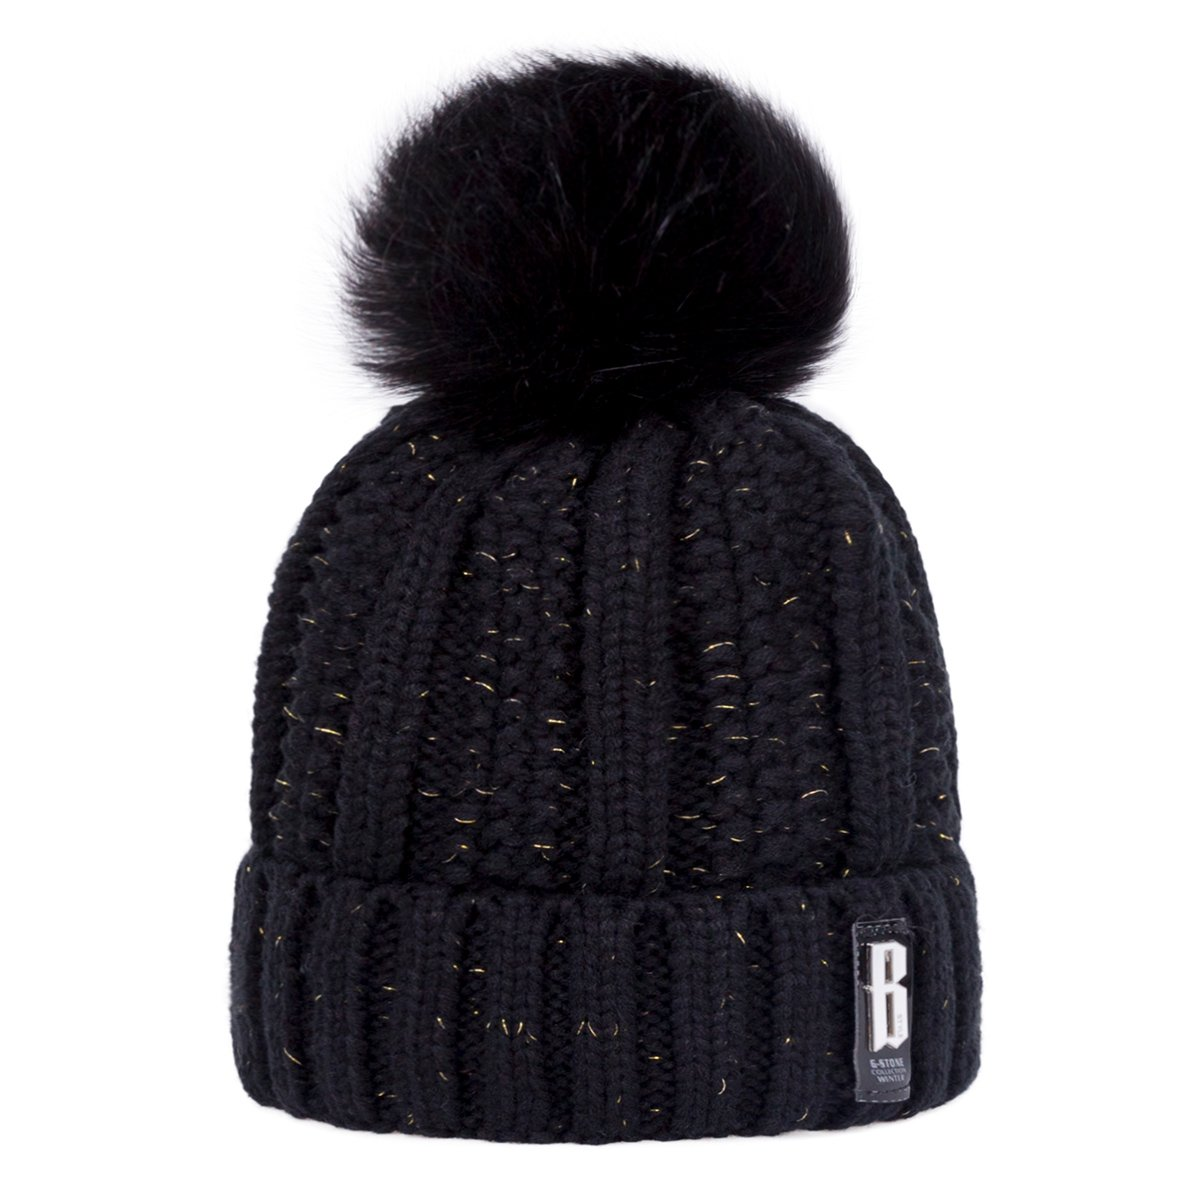 Wish Club Pompom Beanie Hat Women\'s Knitted Winter Hats Girls Soft Fleece Lined Cable Beanie Hats (Black)